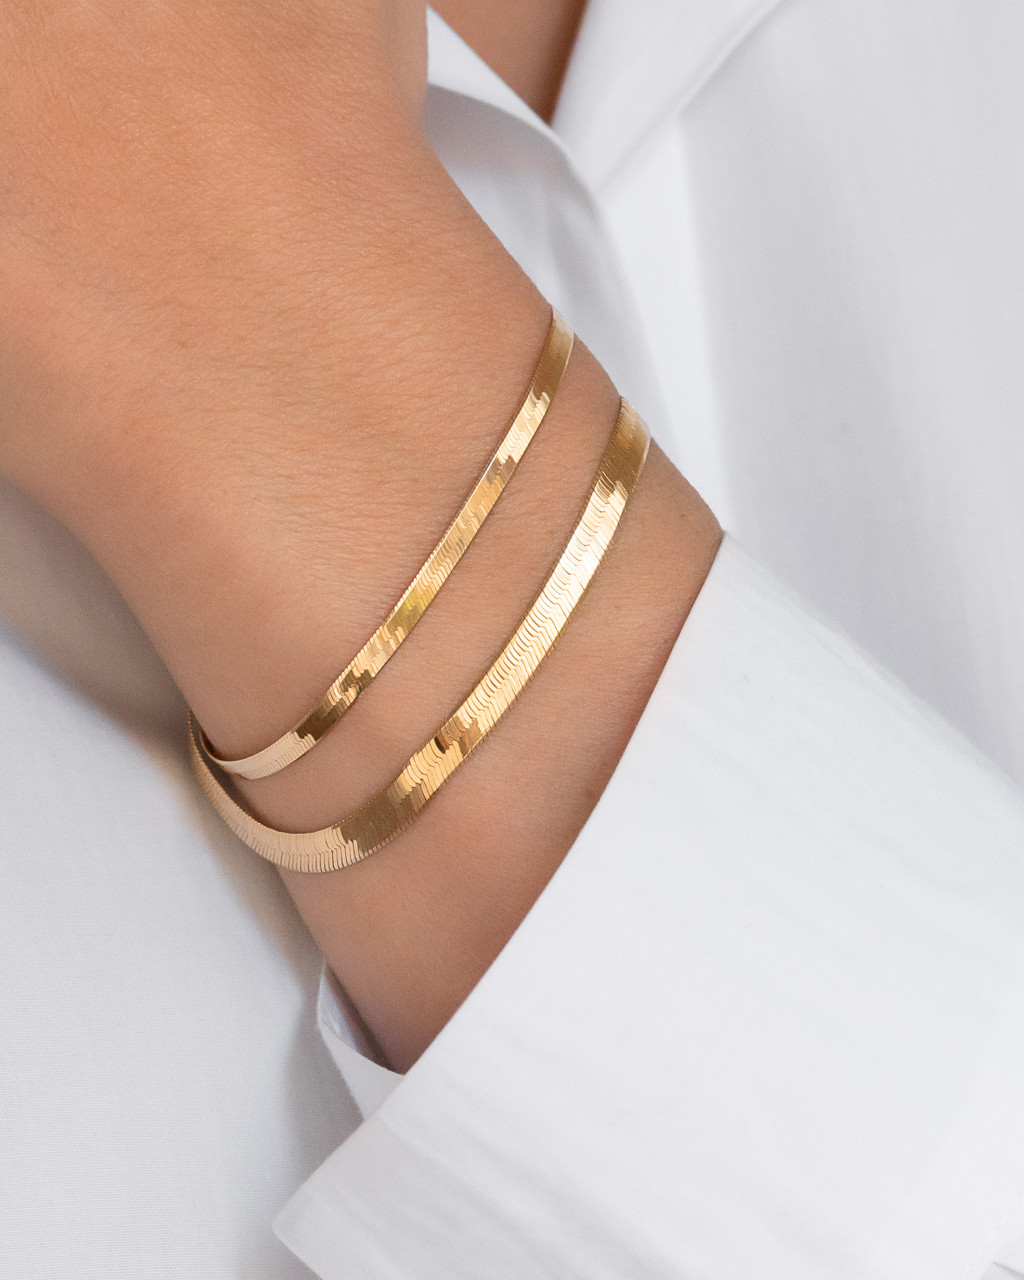 14k Gold Large Herringbone Bracelet - Out of Stock